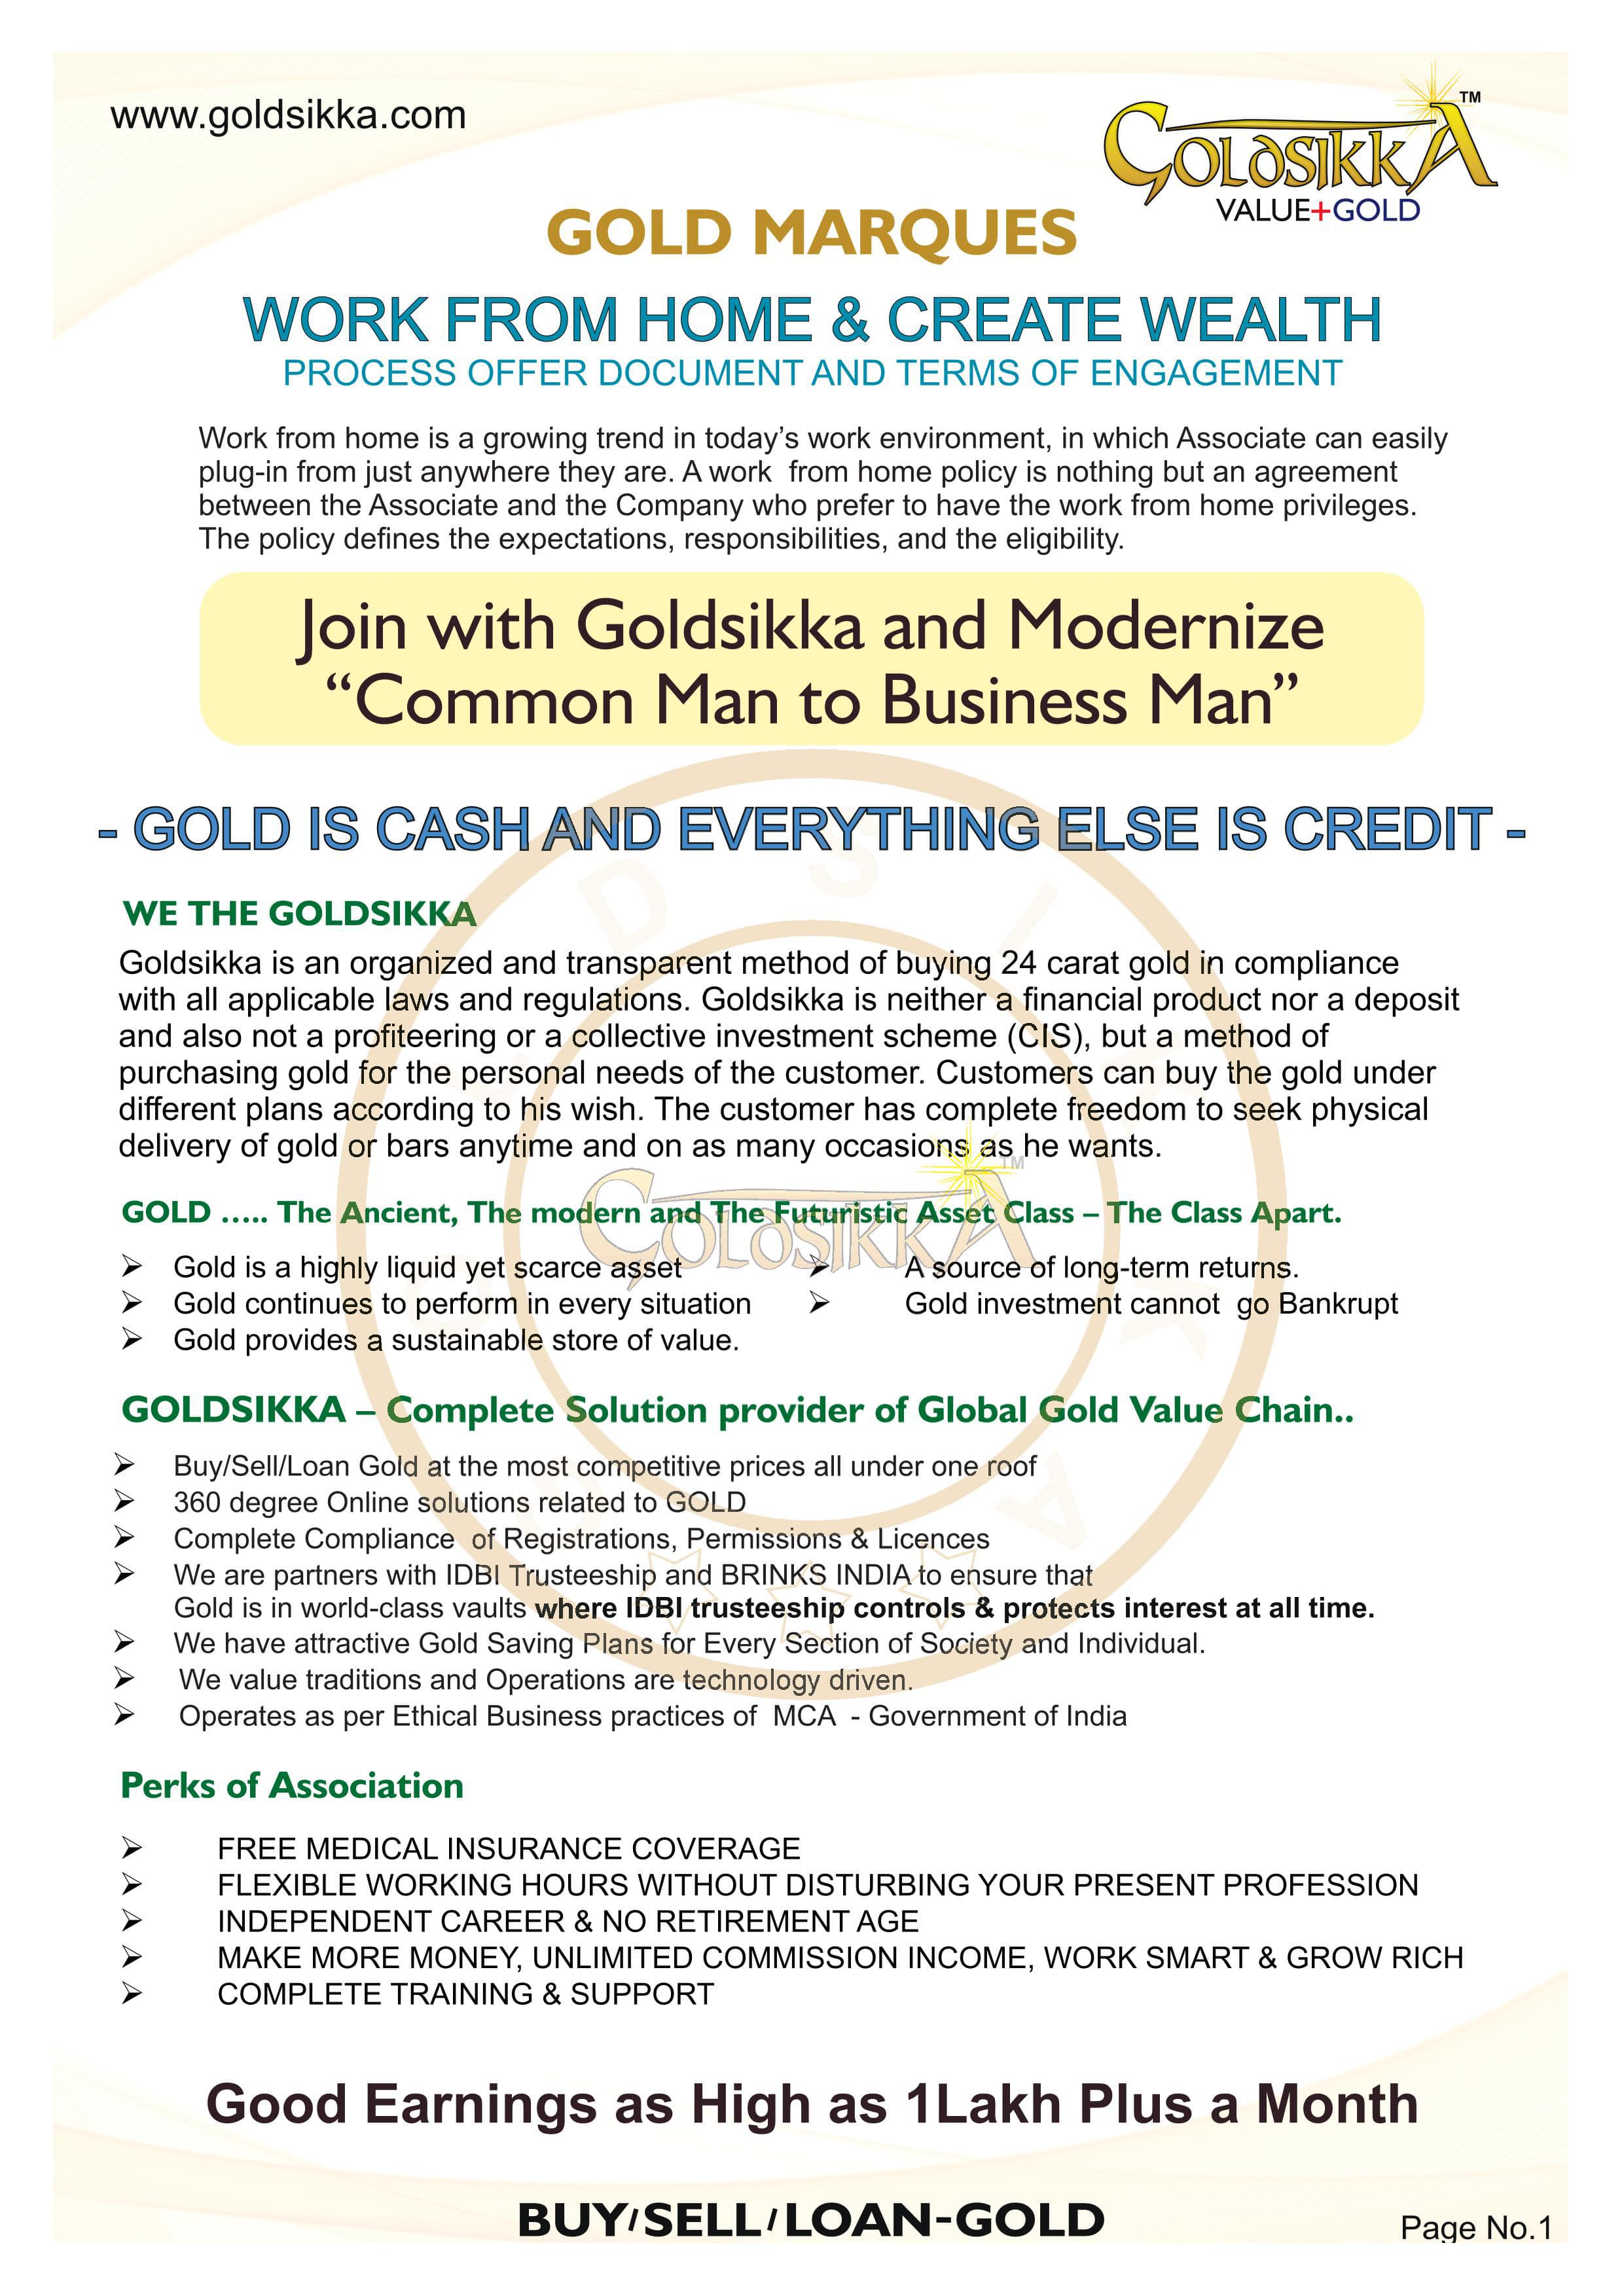 Goldsikka Associated with Gold Marques